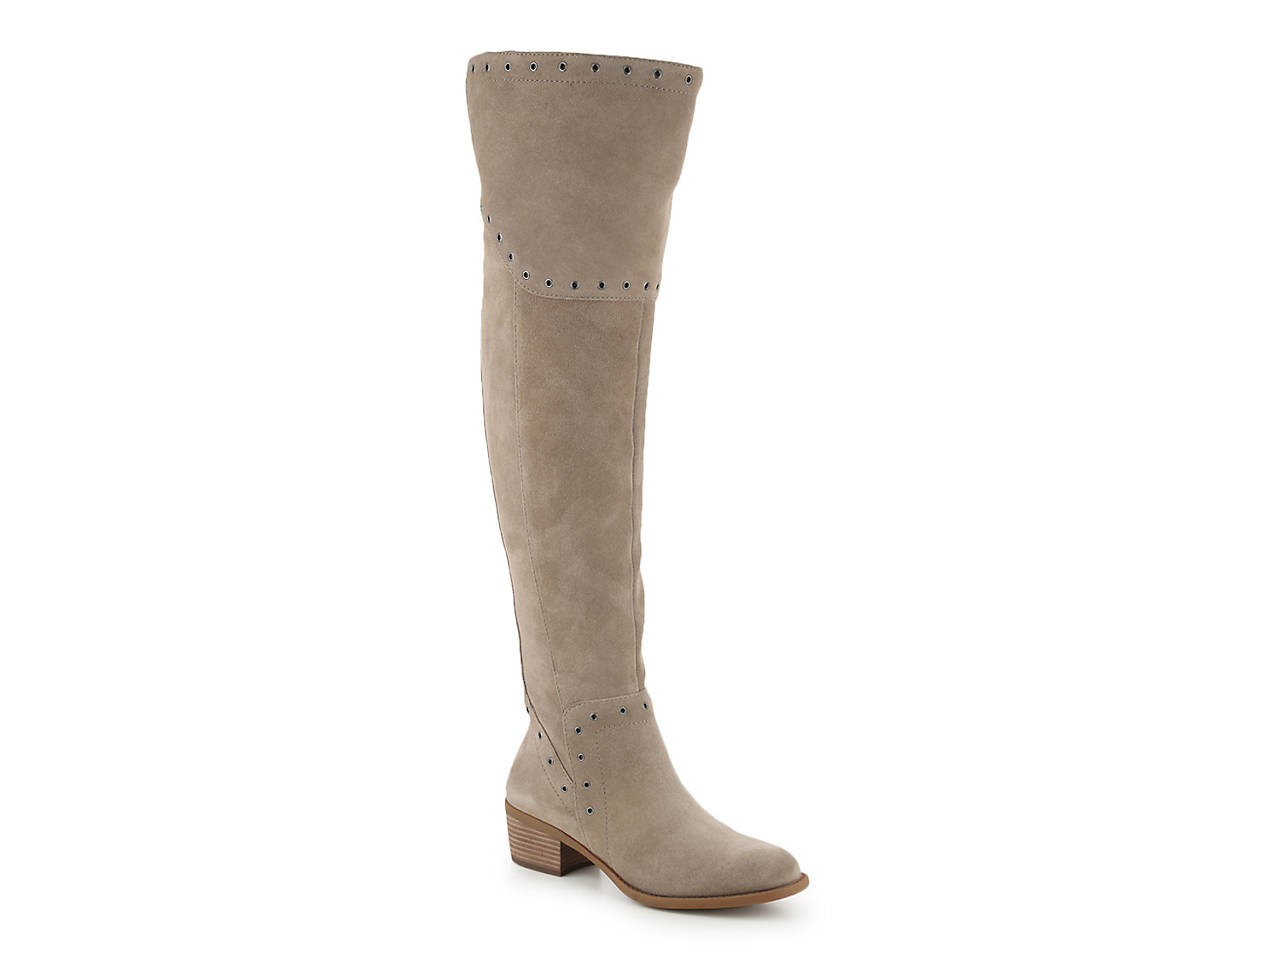 Vince Camuto Bestan Over-the-Knee Leather Boot sgJP0